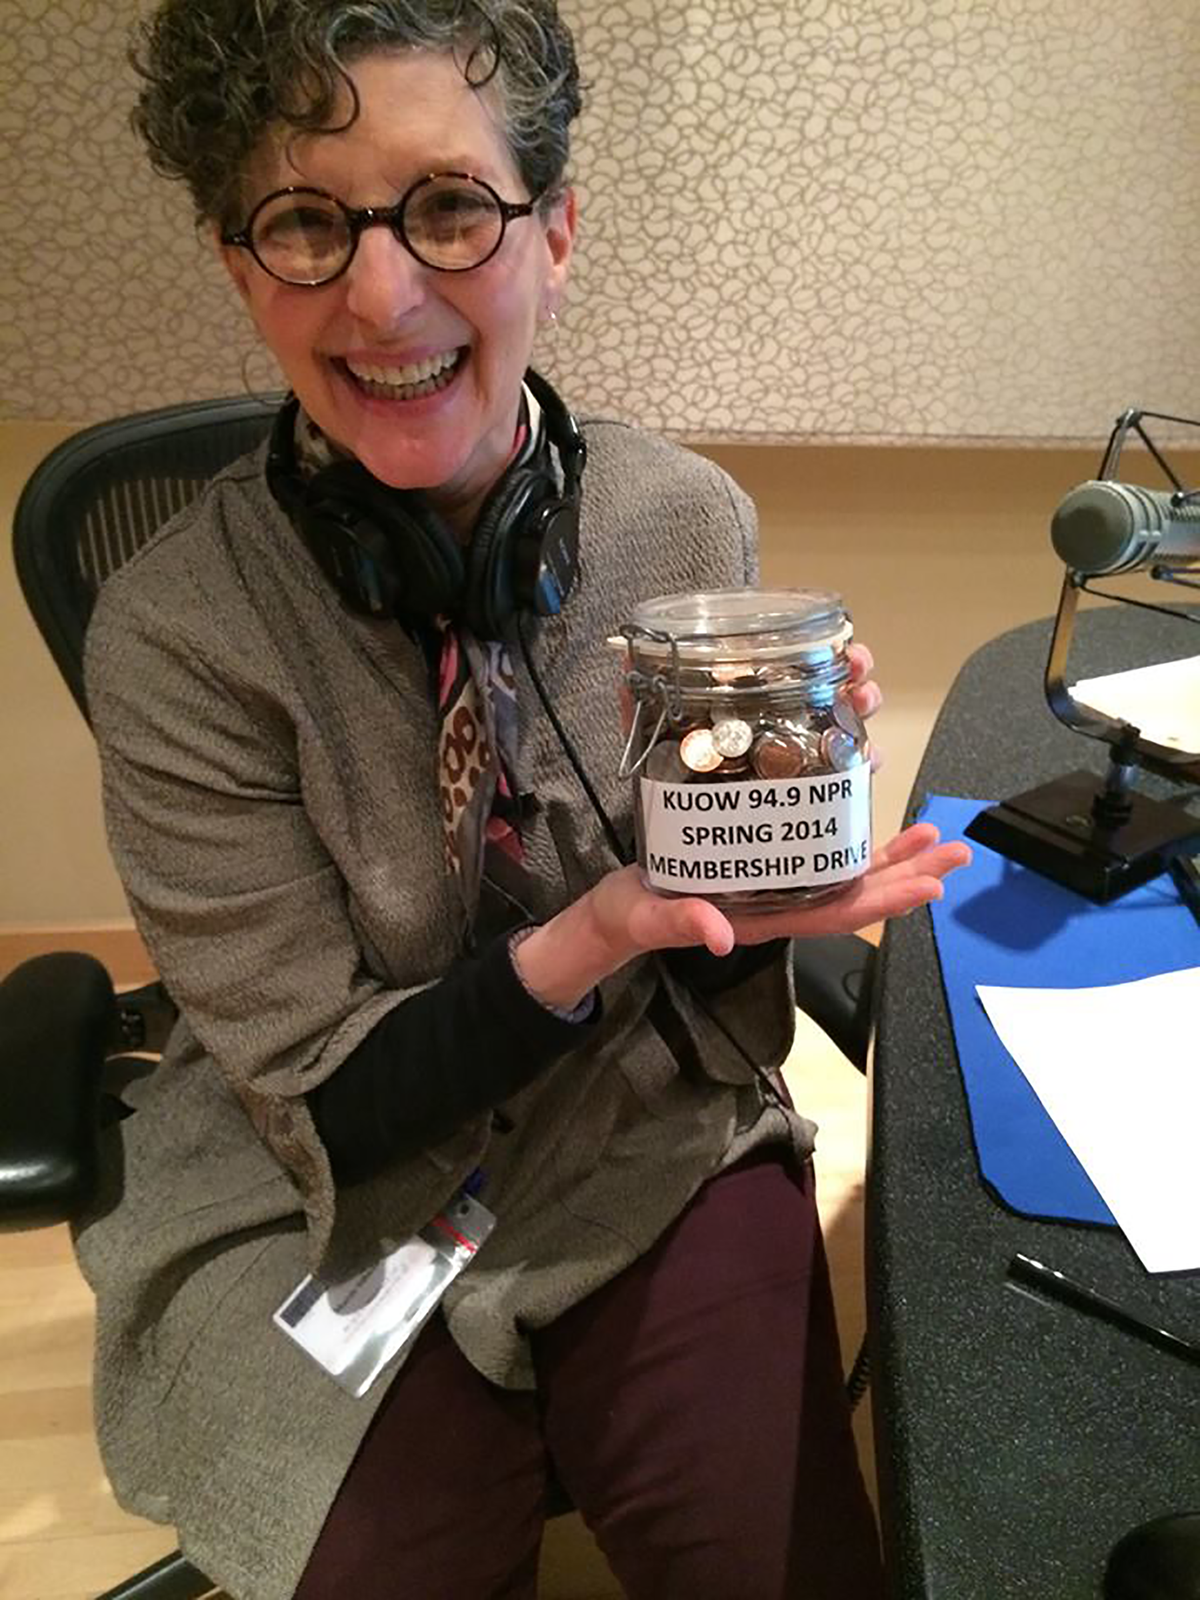 Marcie Sillman with money from the KUOW Membership Drive, 2014.